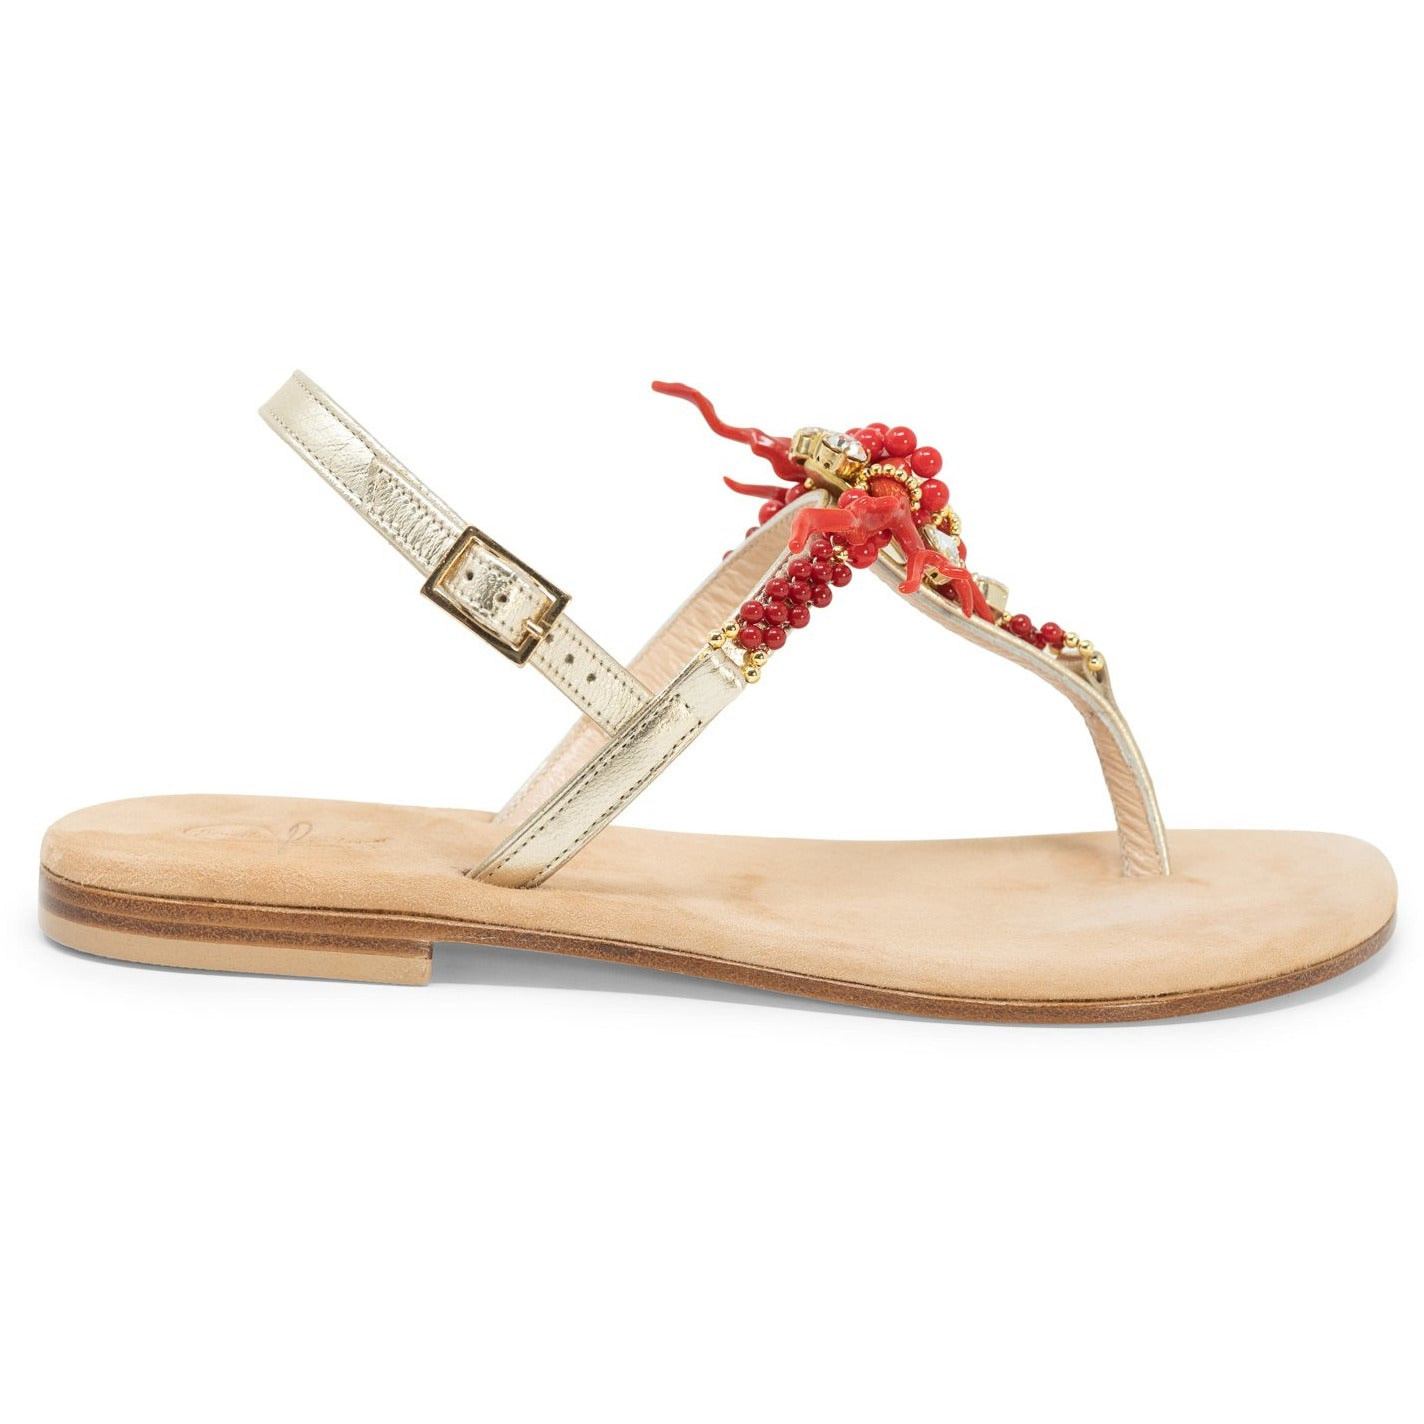 MPOWC5020 T10 Women Sandals - New Spring Summer 2020 Collection